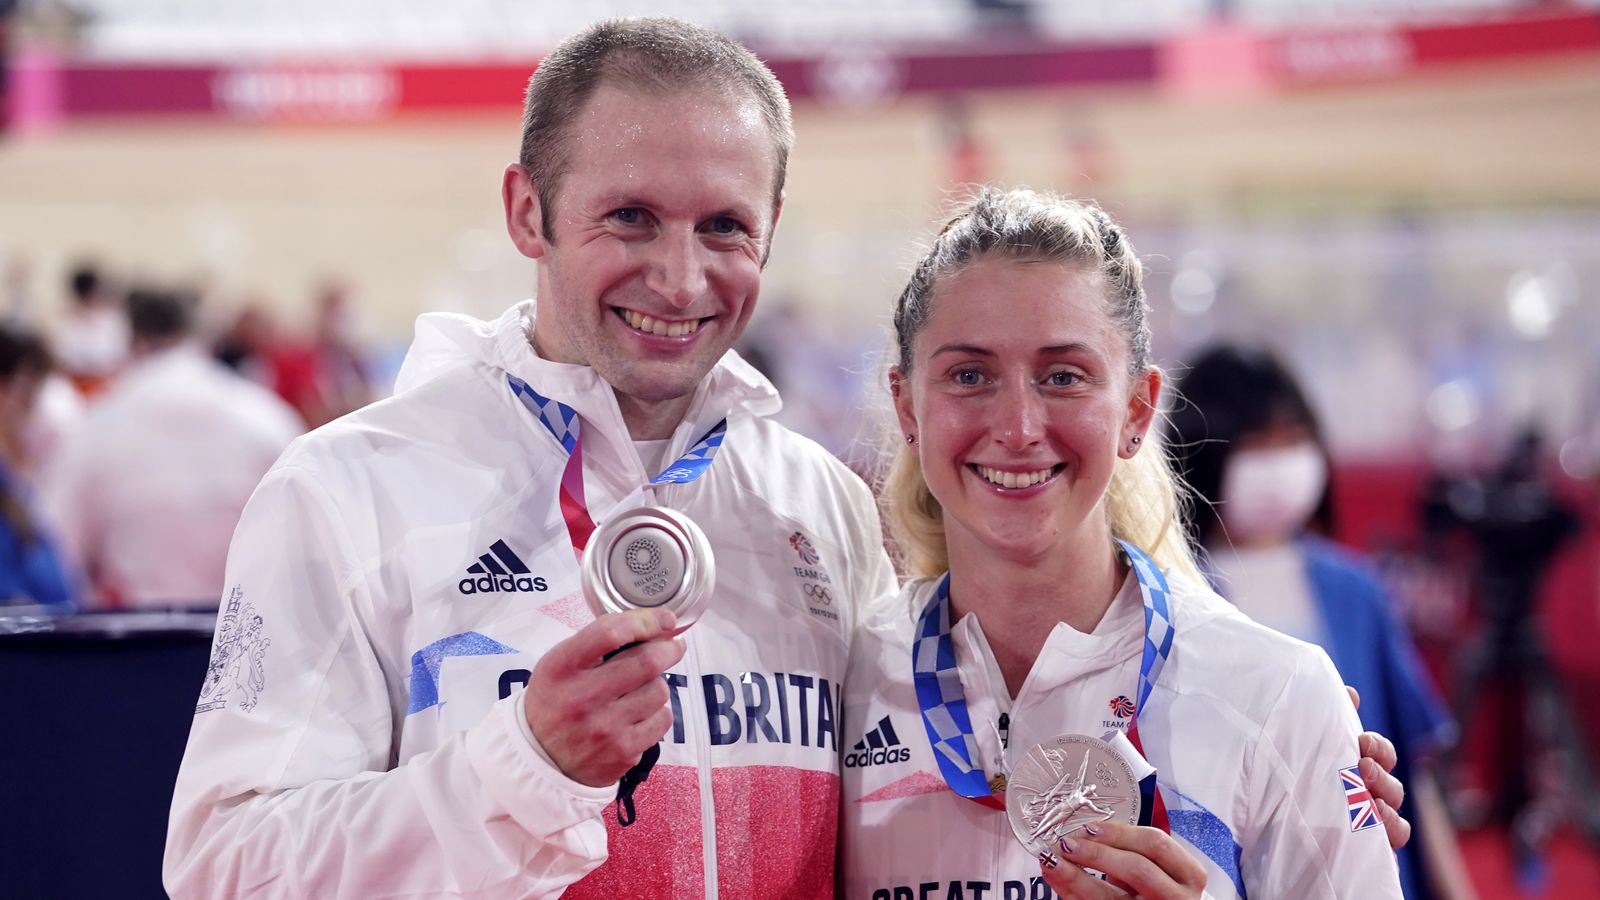 Tokyo Olympics: Jason and Laura Kenny claim silver medals in first cycling races